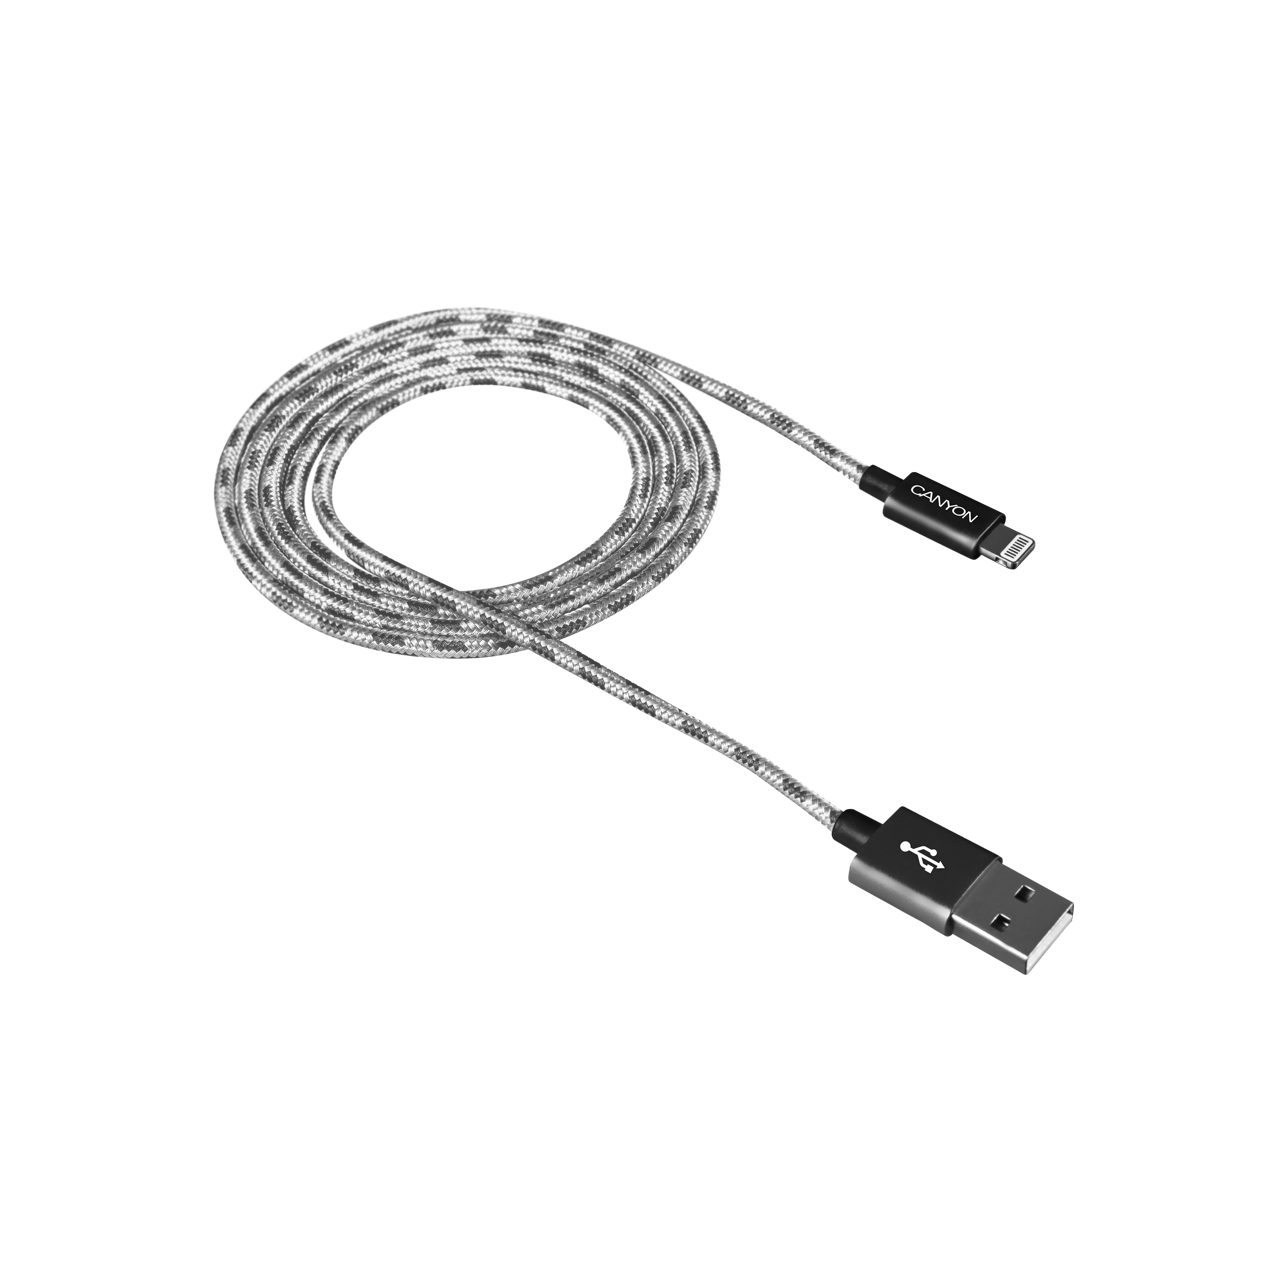 Braided 8-pin Lightning - USB cable for iPhone 5/6/7 (CNE-CFI3DG ...